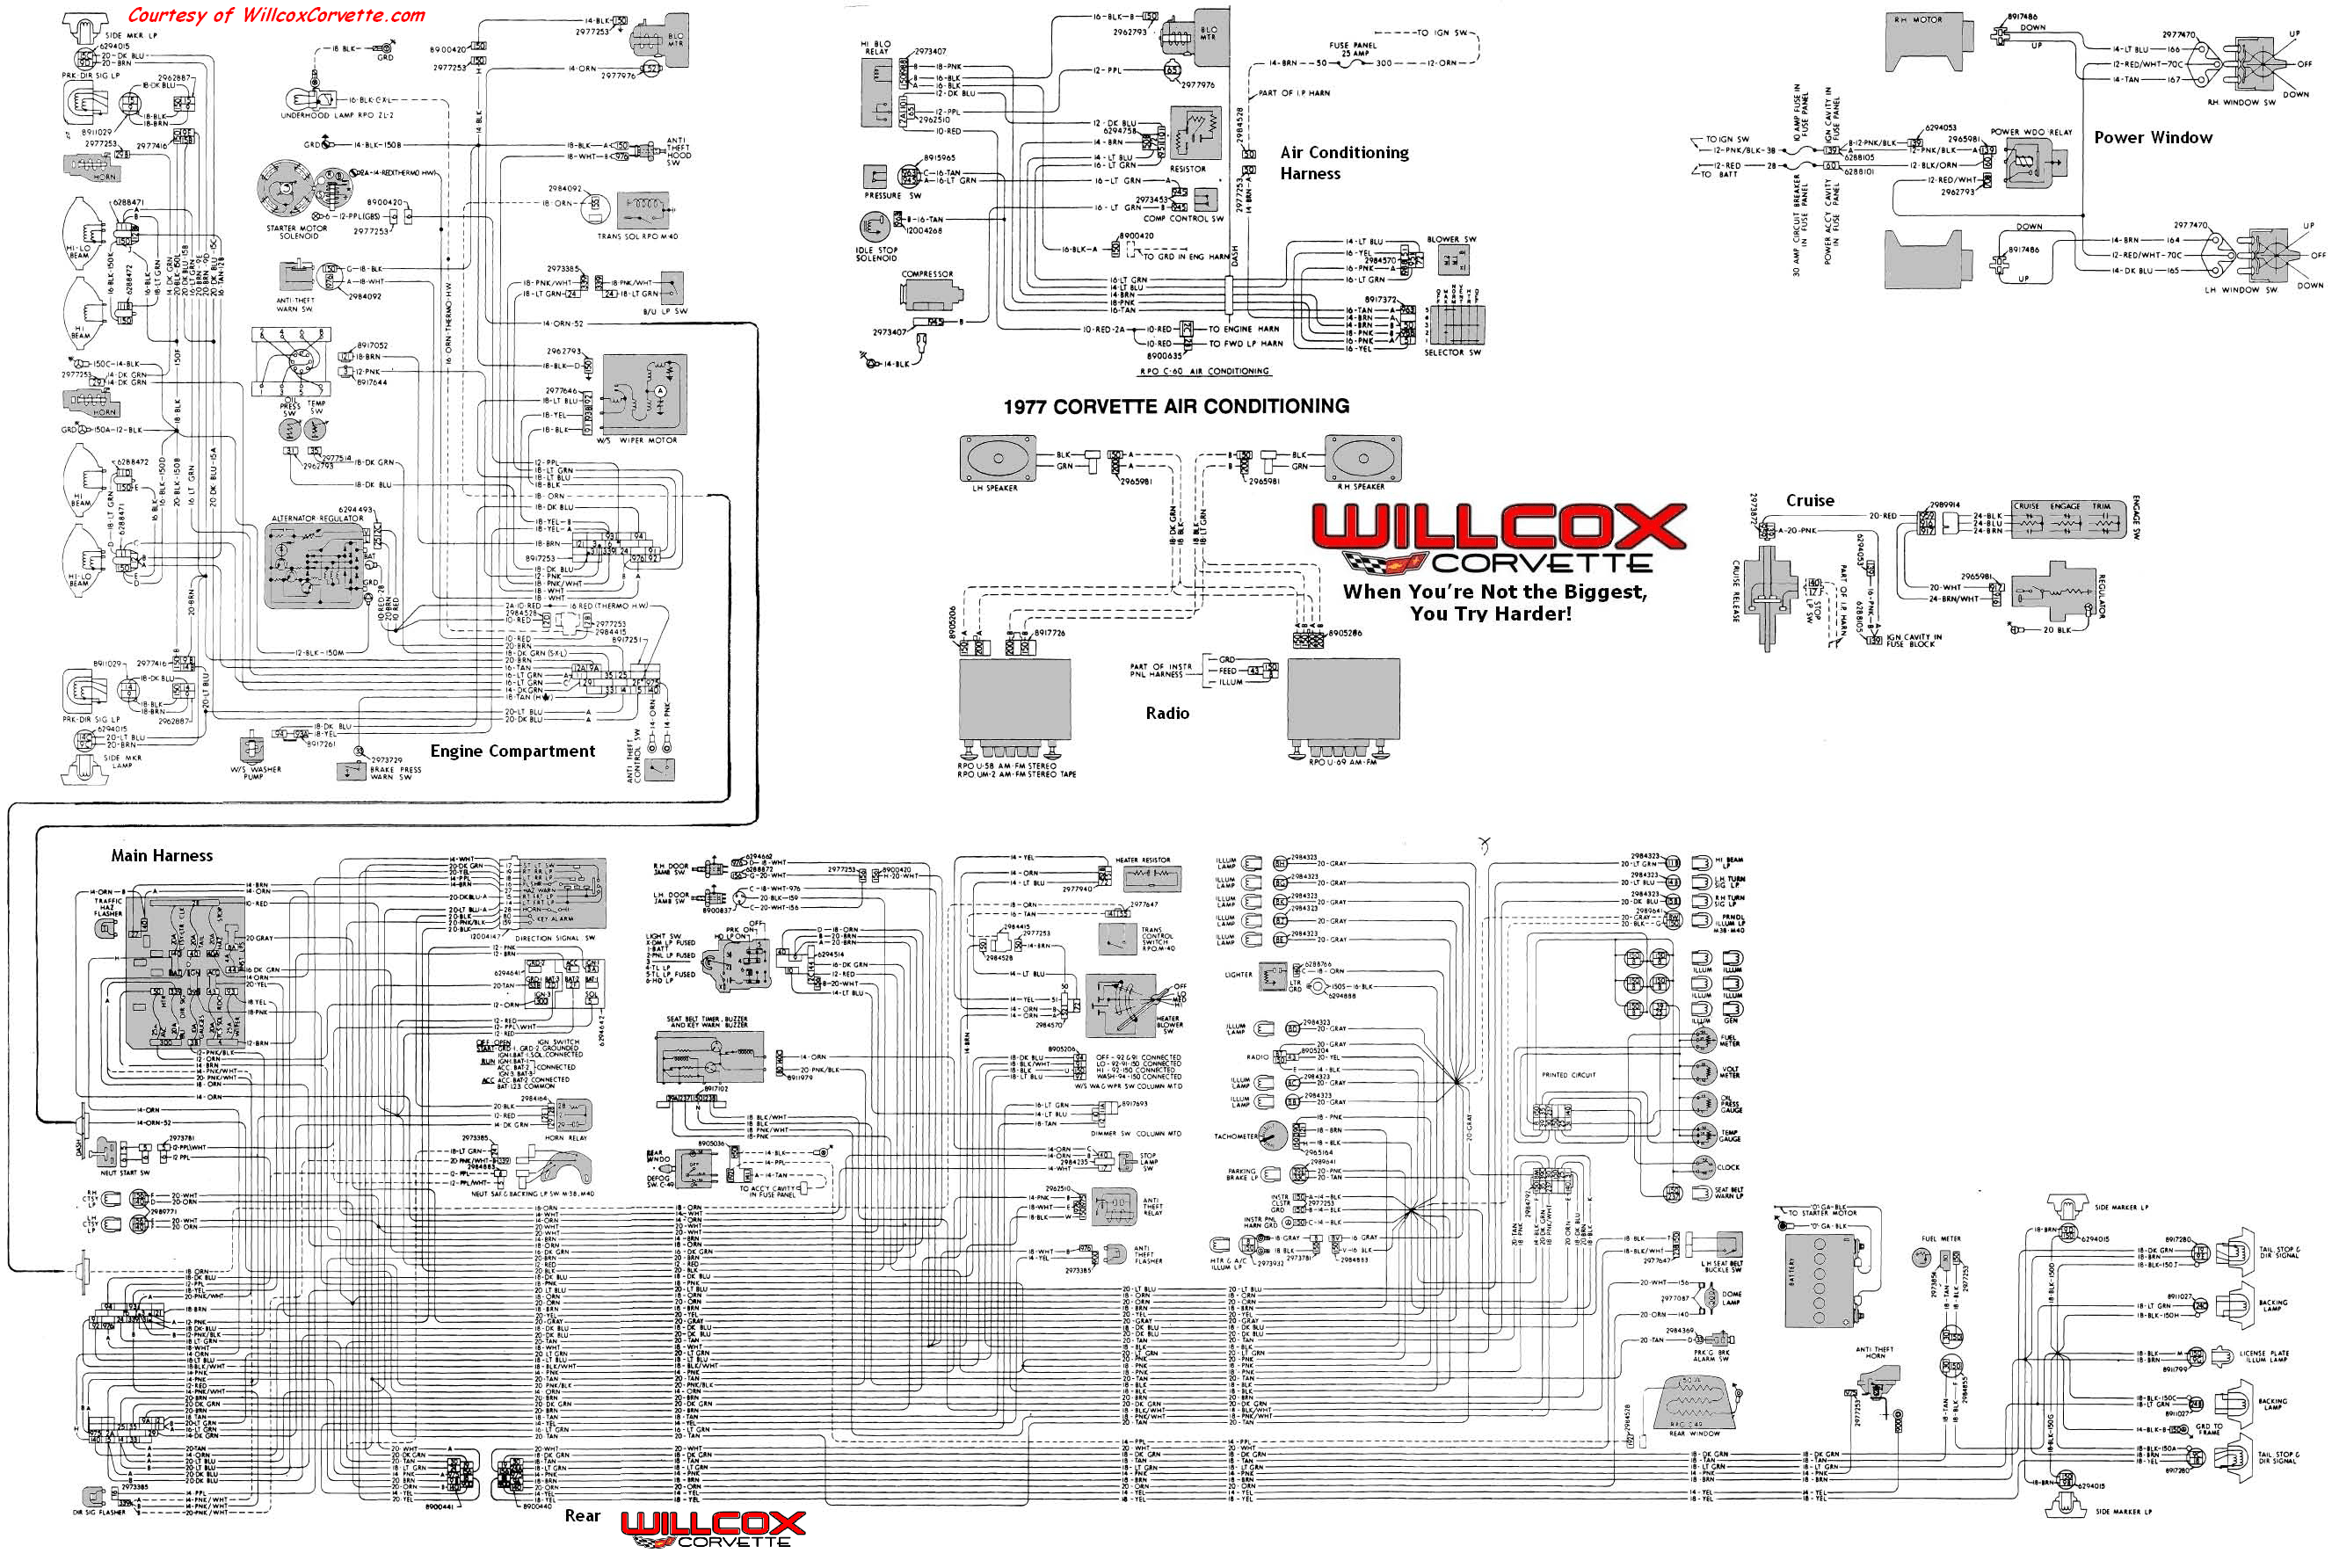 77 corvette wire schematic tracer?resize\\\\\\\\\\\\=665%2C447 1976 cj7 ignition wiring diagram 1977 jeep cj7 diagram, 1976 cj7 82 jeep cj7 wiring diagram at n-0.co